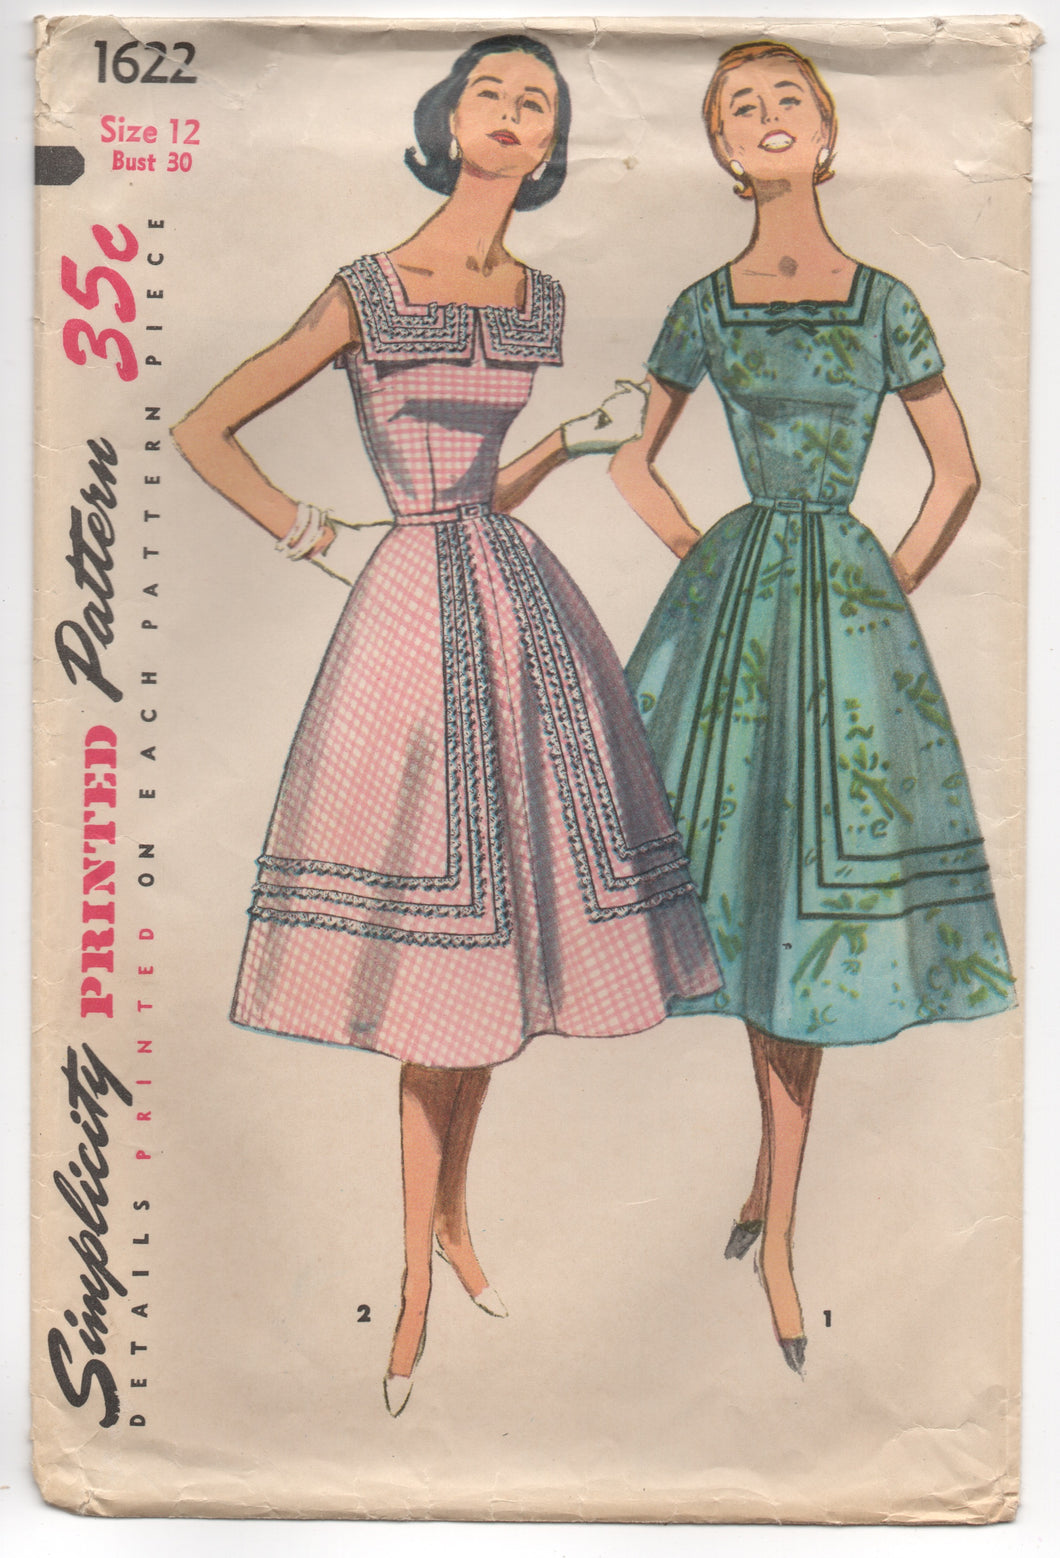 1950's Simplicity One Piece Dress with Square Collar and Ribbon Trim Detail - Bust 30